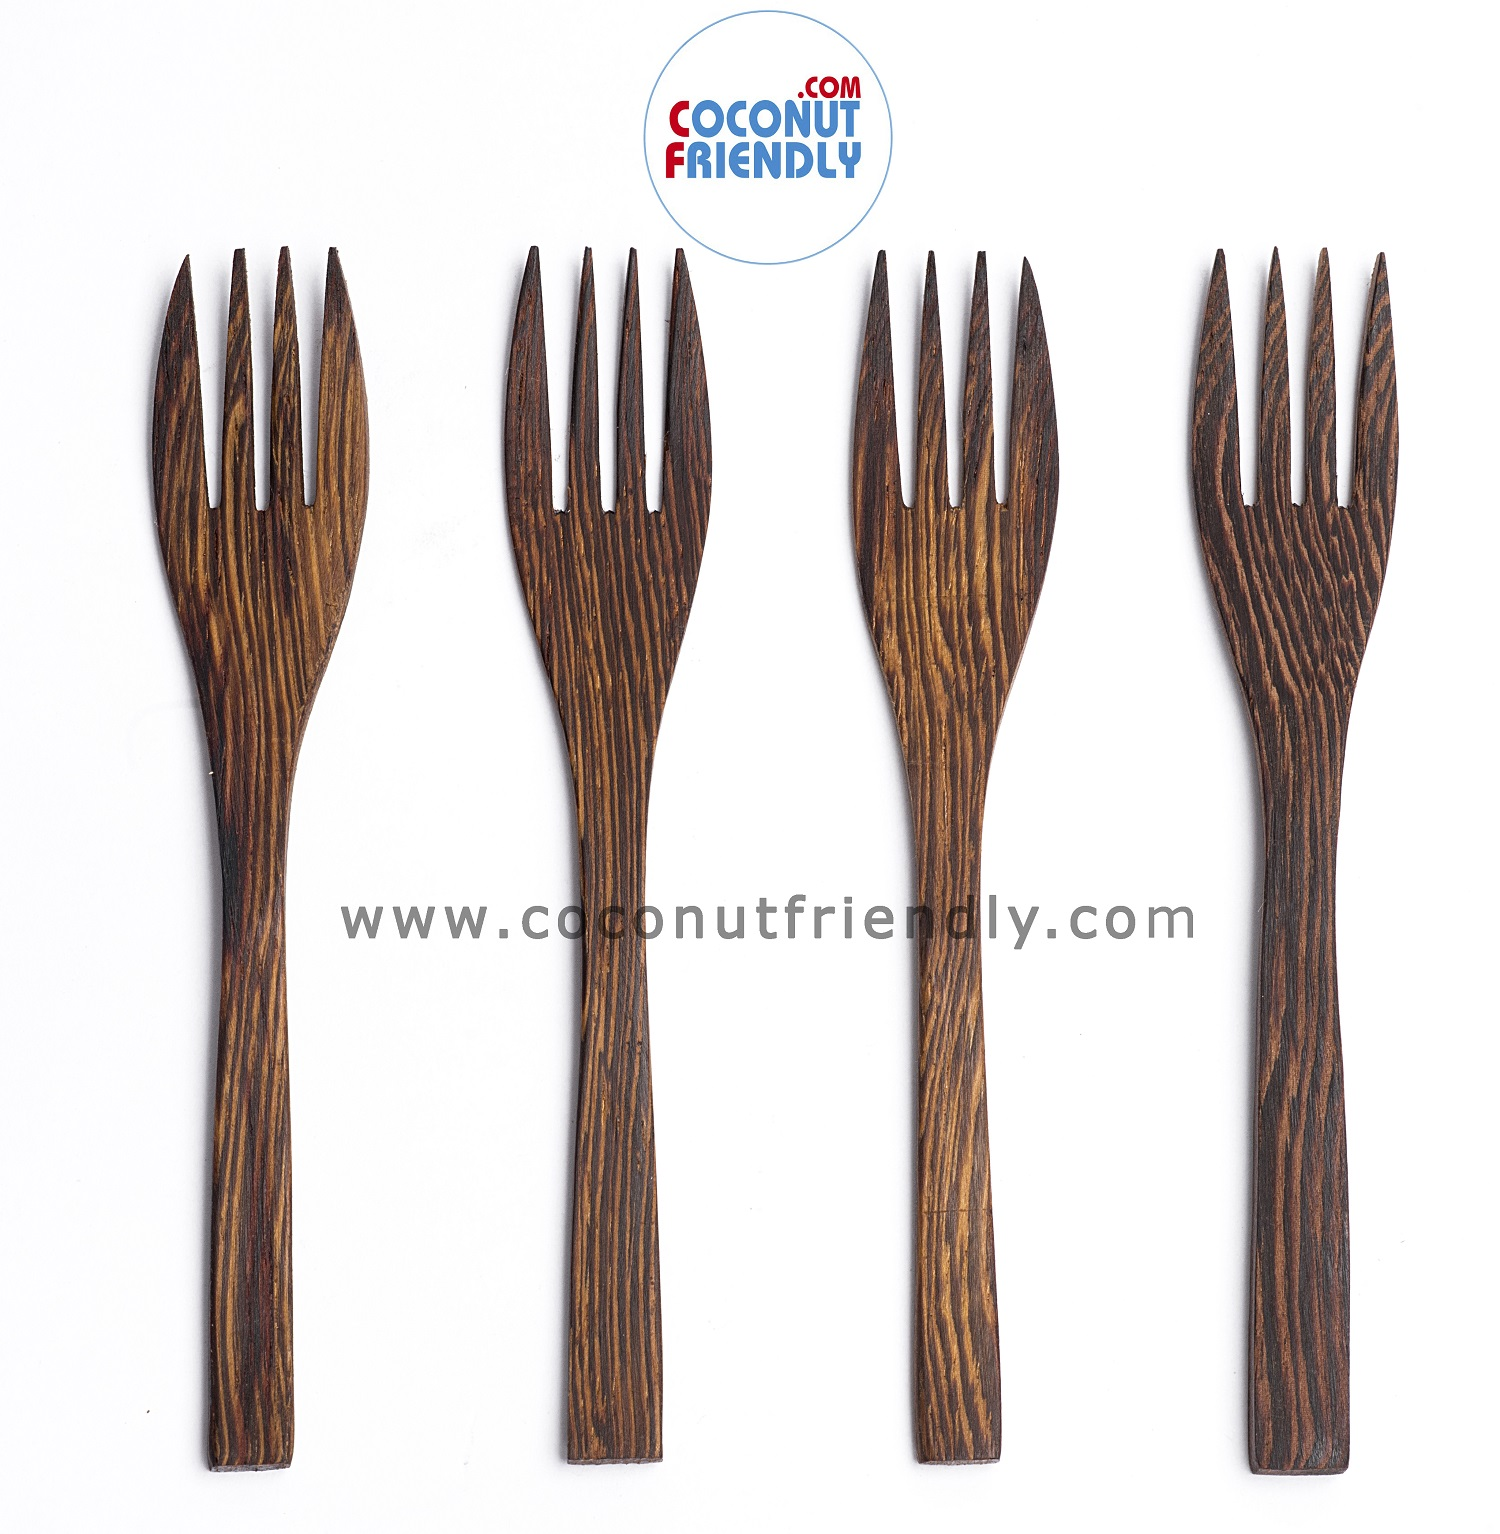 WHOLESALE COCONUT FORKS , VIETNAM COCONUT SPOONS, FORKS SUPPLIER